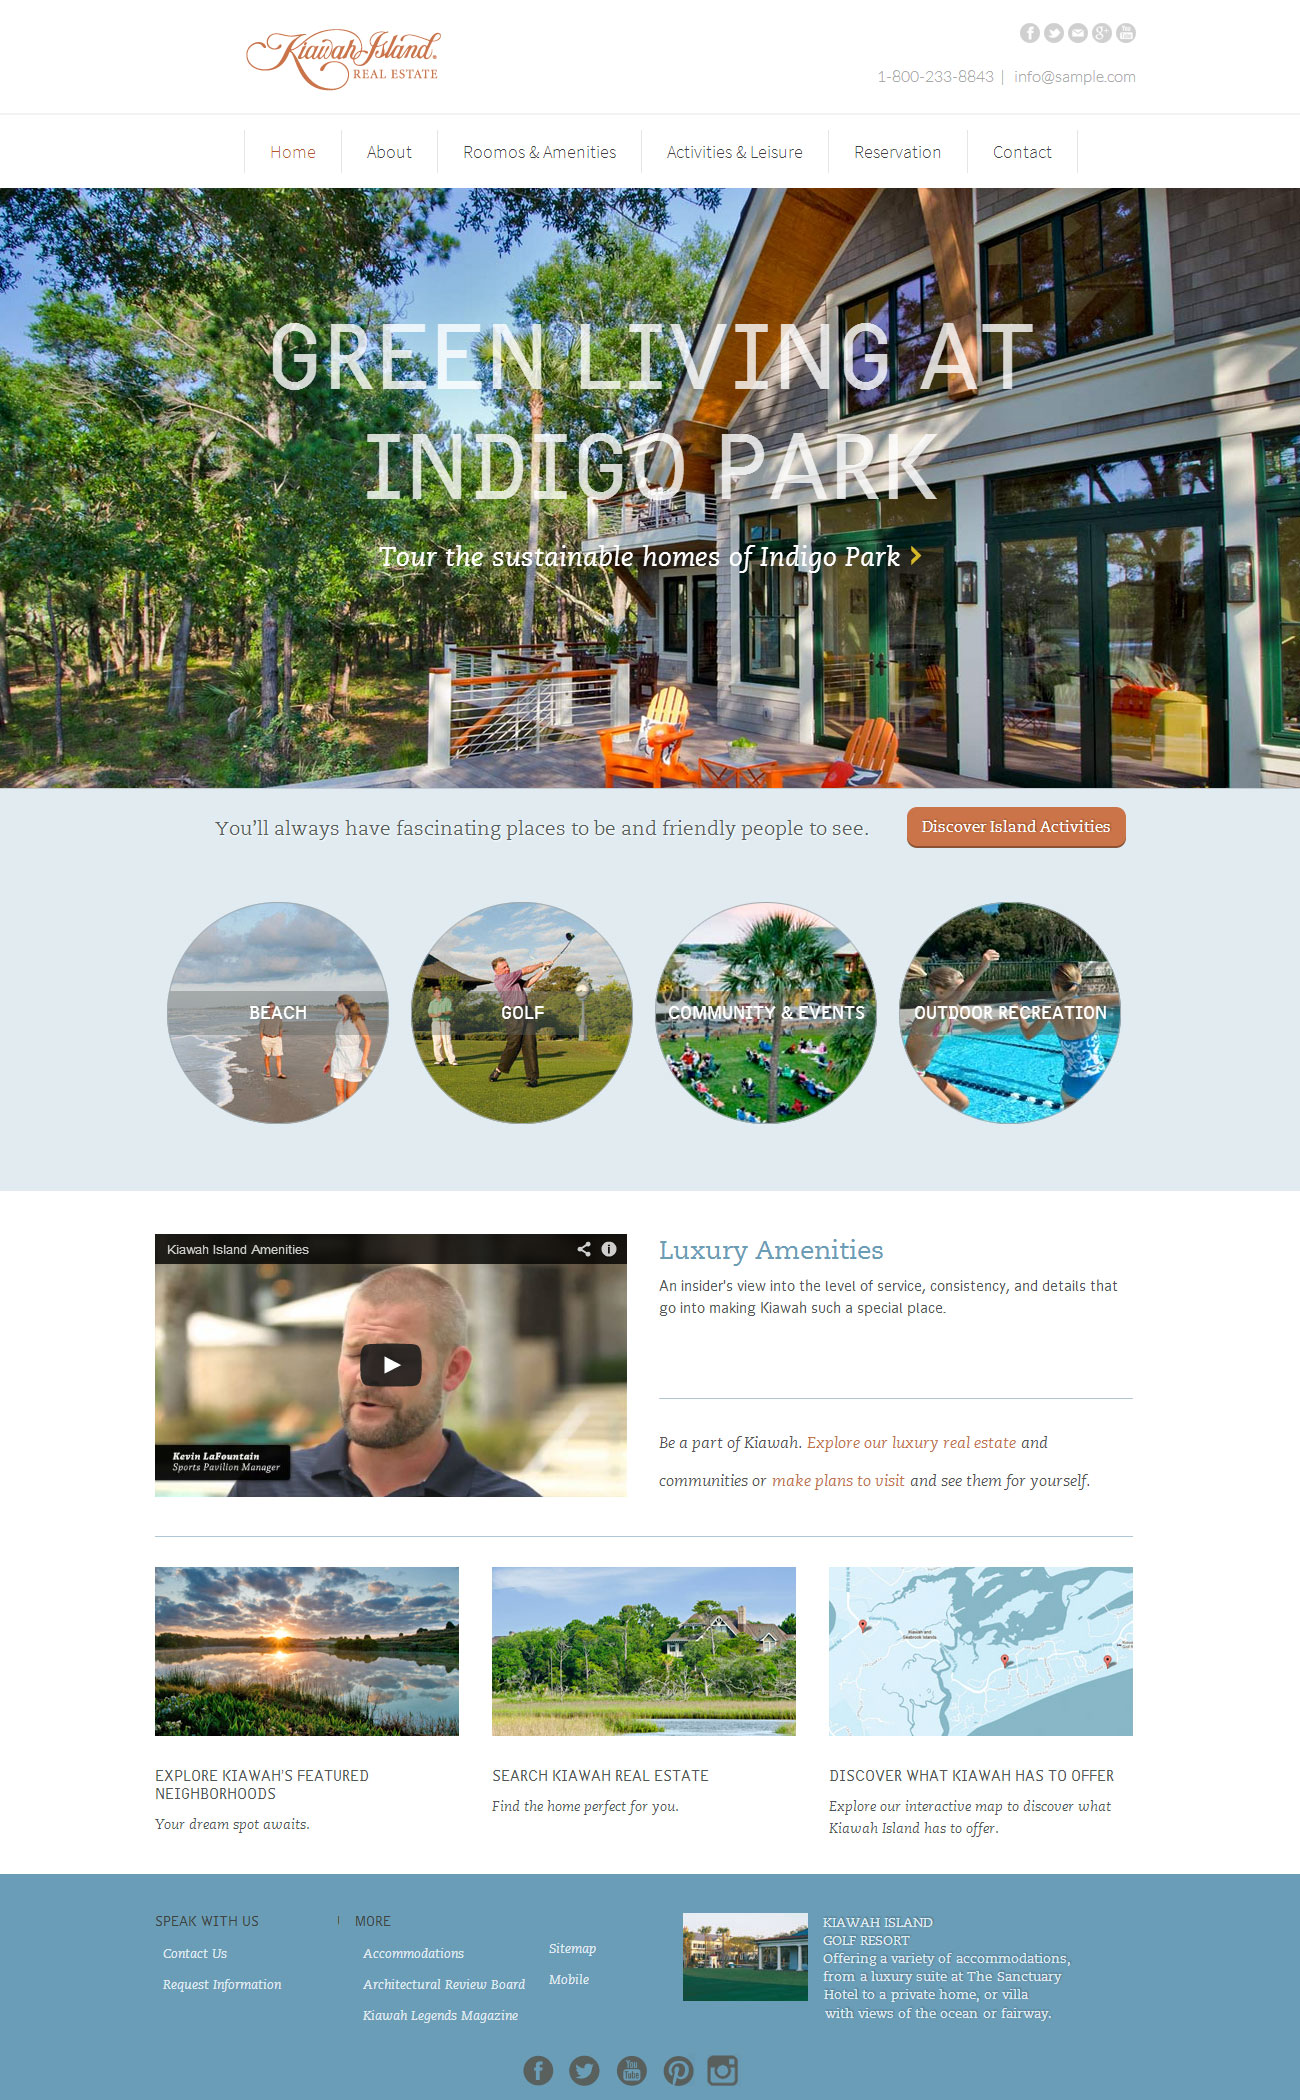 weebly site templates - weebly templates themes for hotel travel business